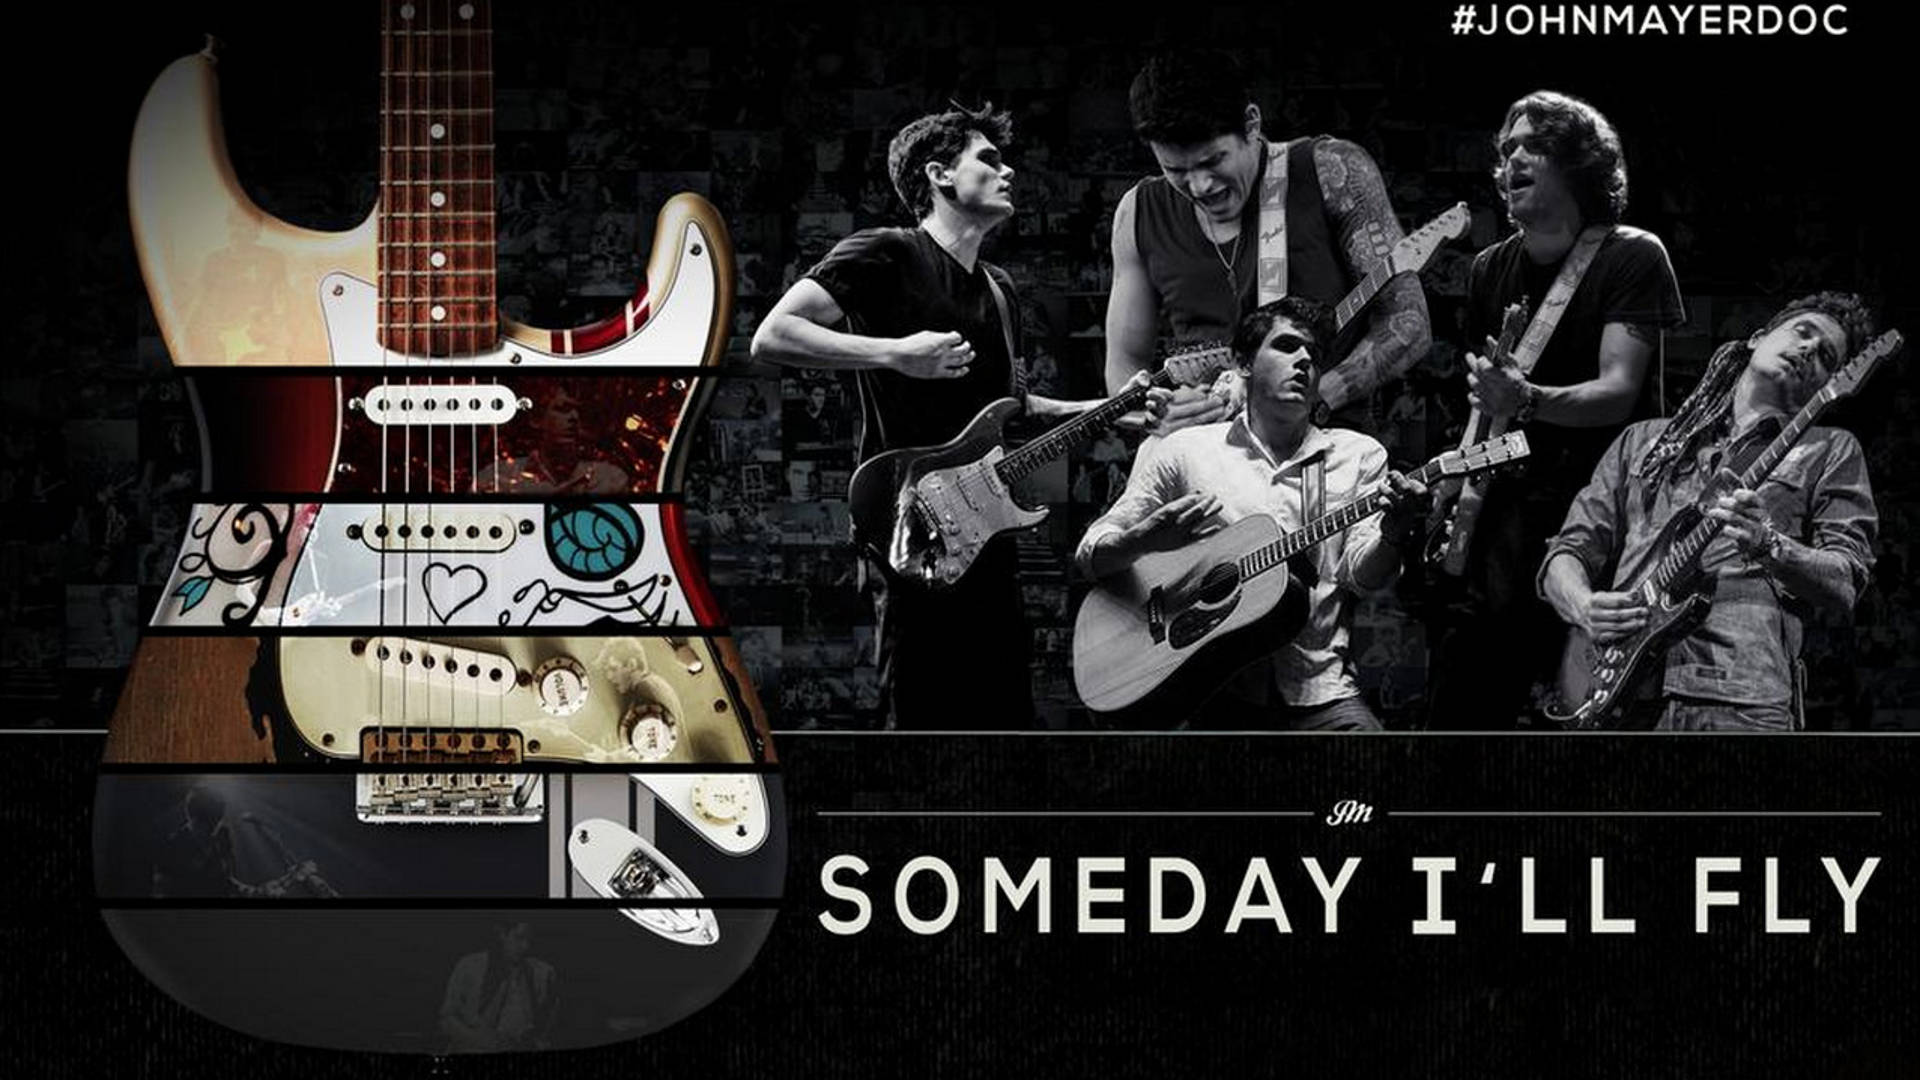 Watch Full Movie - John Mayer: Someday I'll Fly